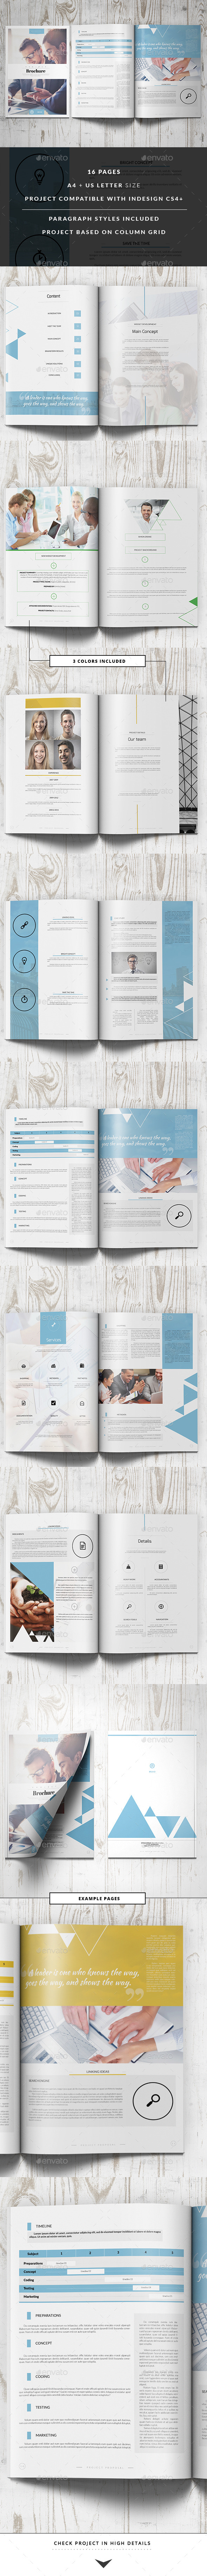 GraphicRiver Project Proposal Business Template 11010516